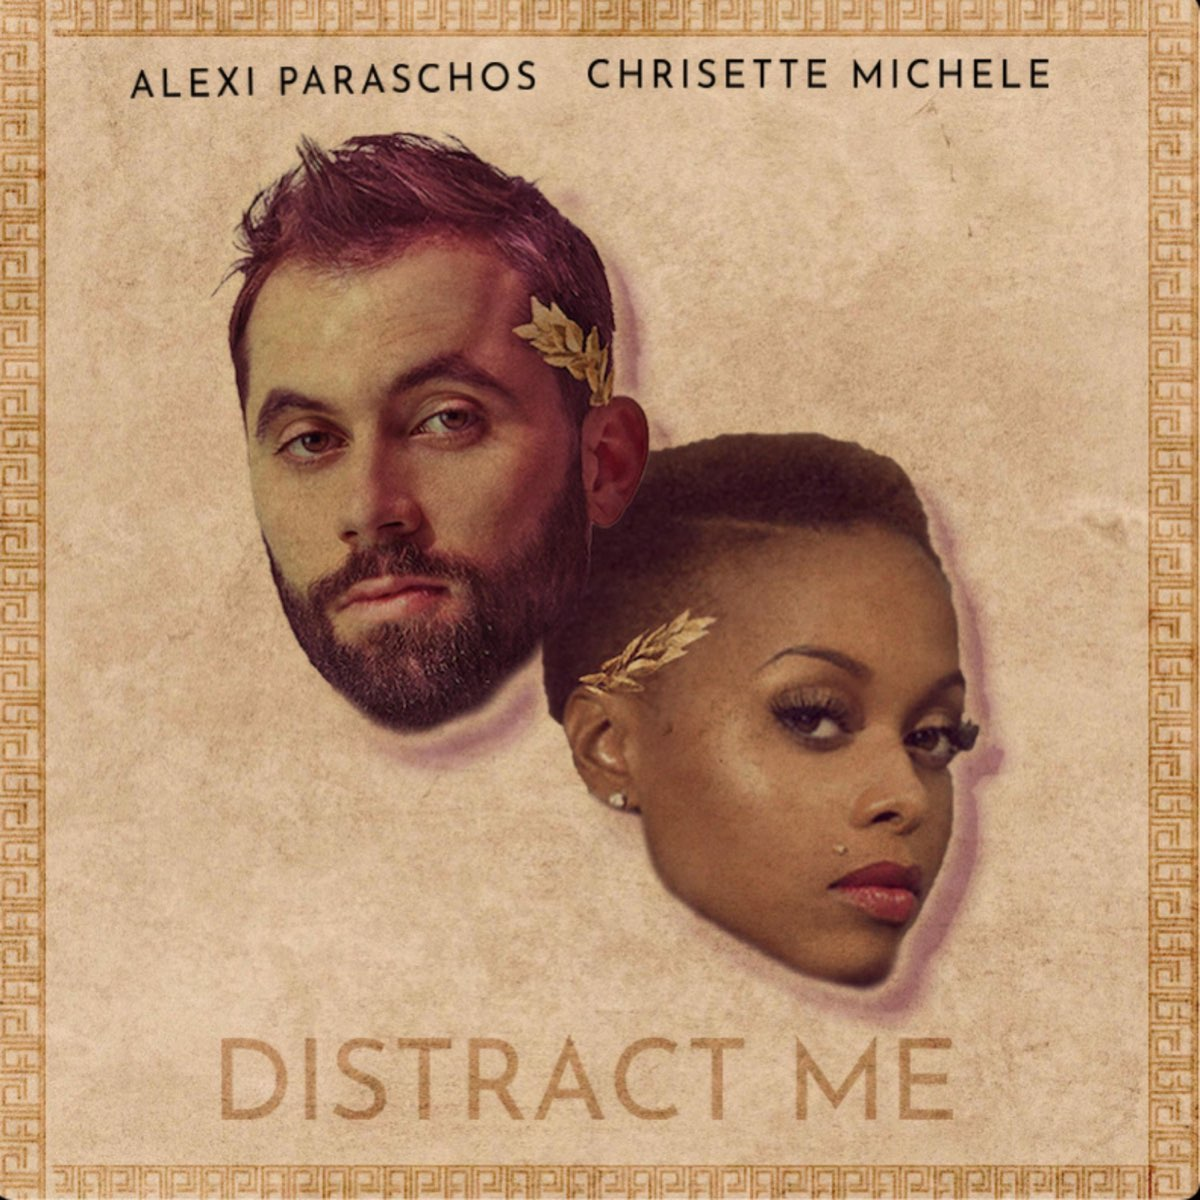 New Music: Alexi Paraschos – Distract Me (featuring Chrisette Michele)